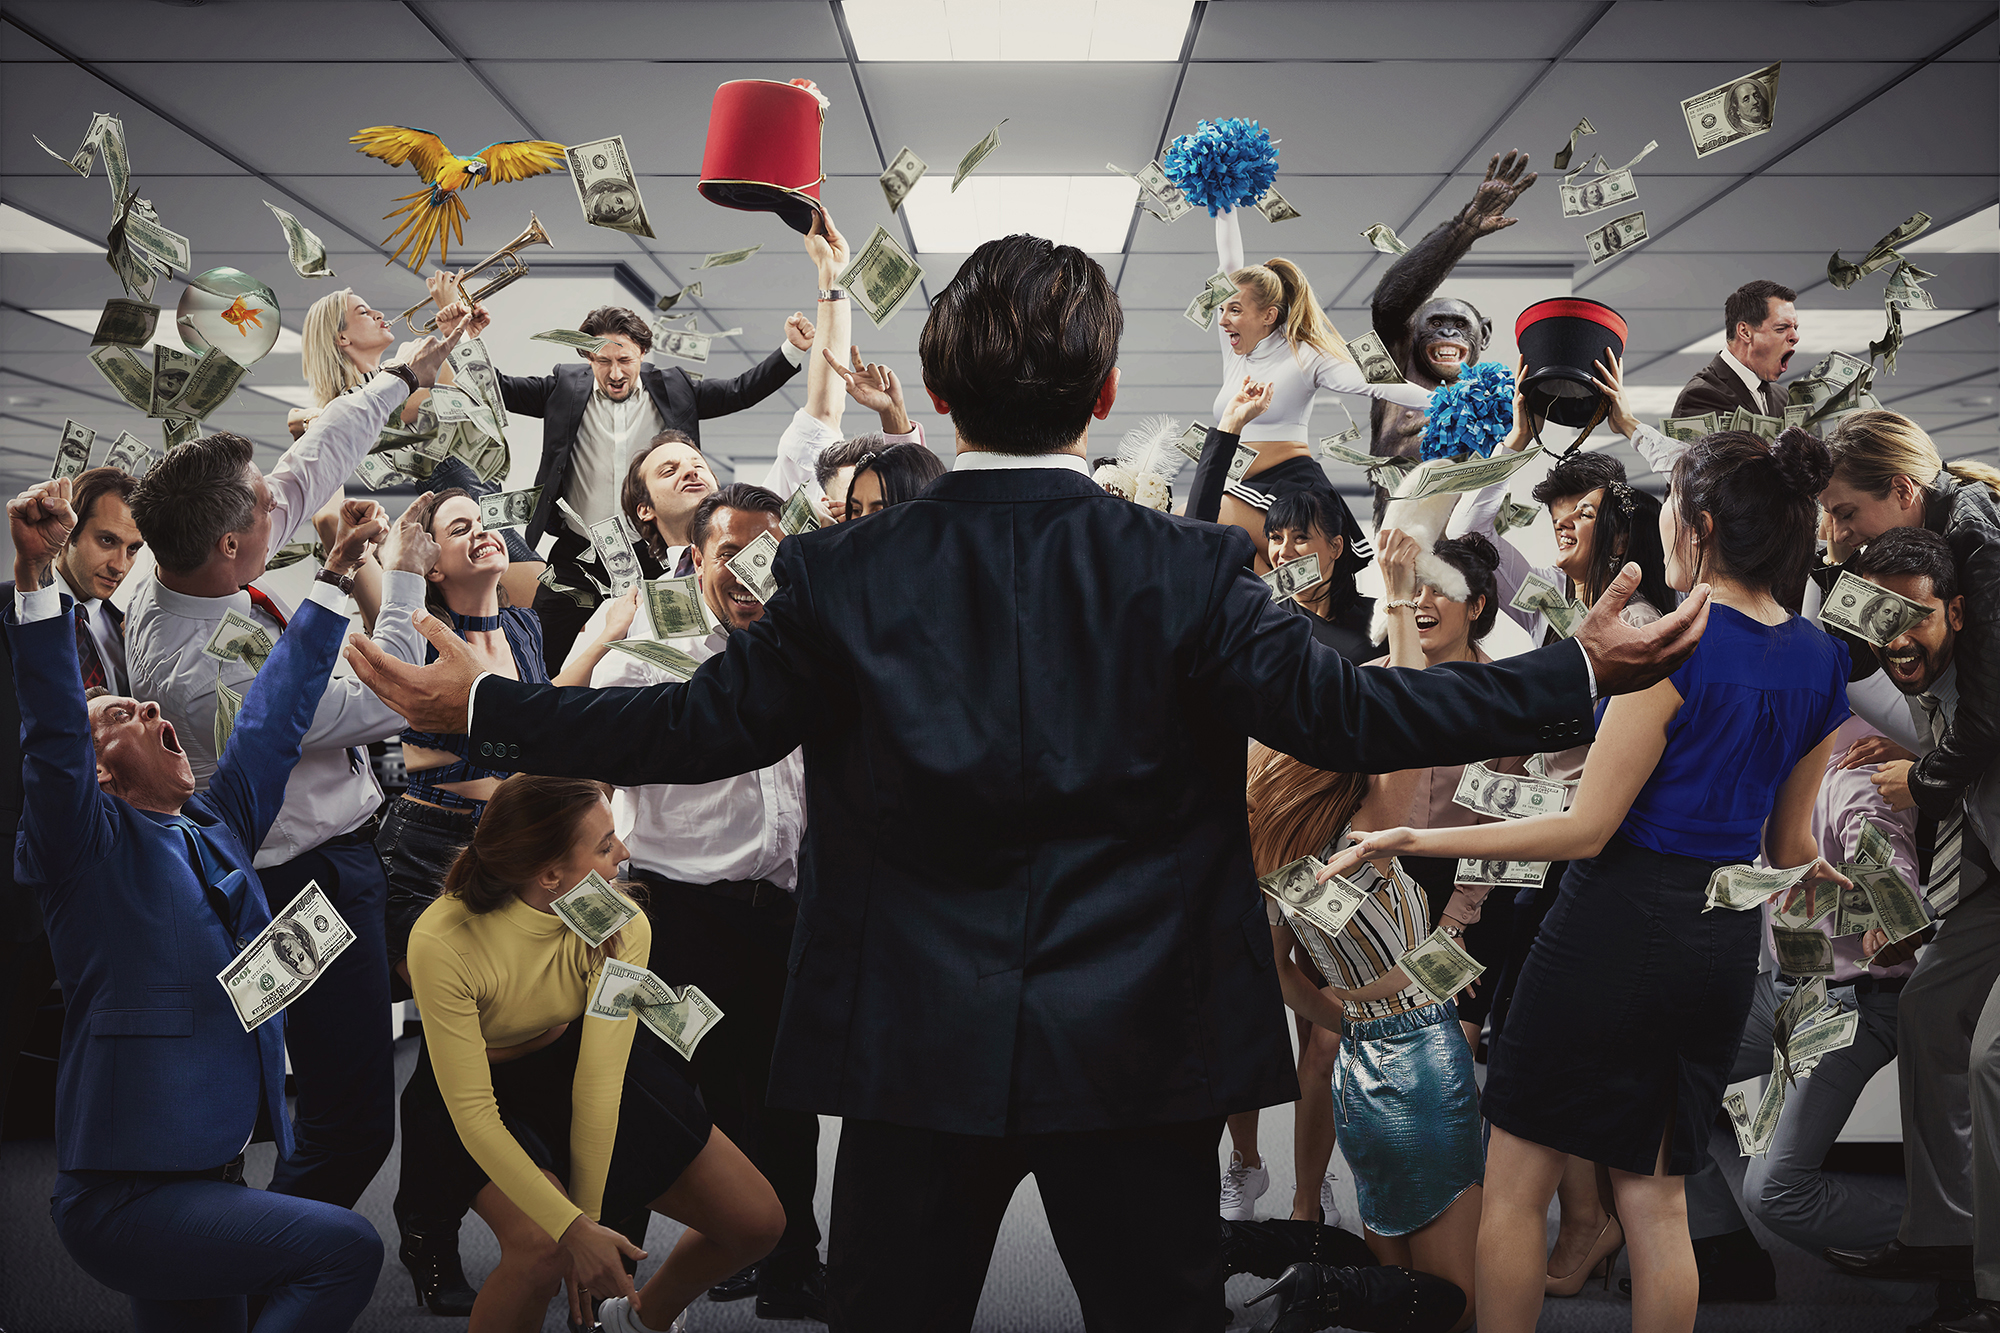 Immersive Adaptation of The Wolf of Wall Street